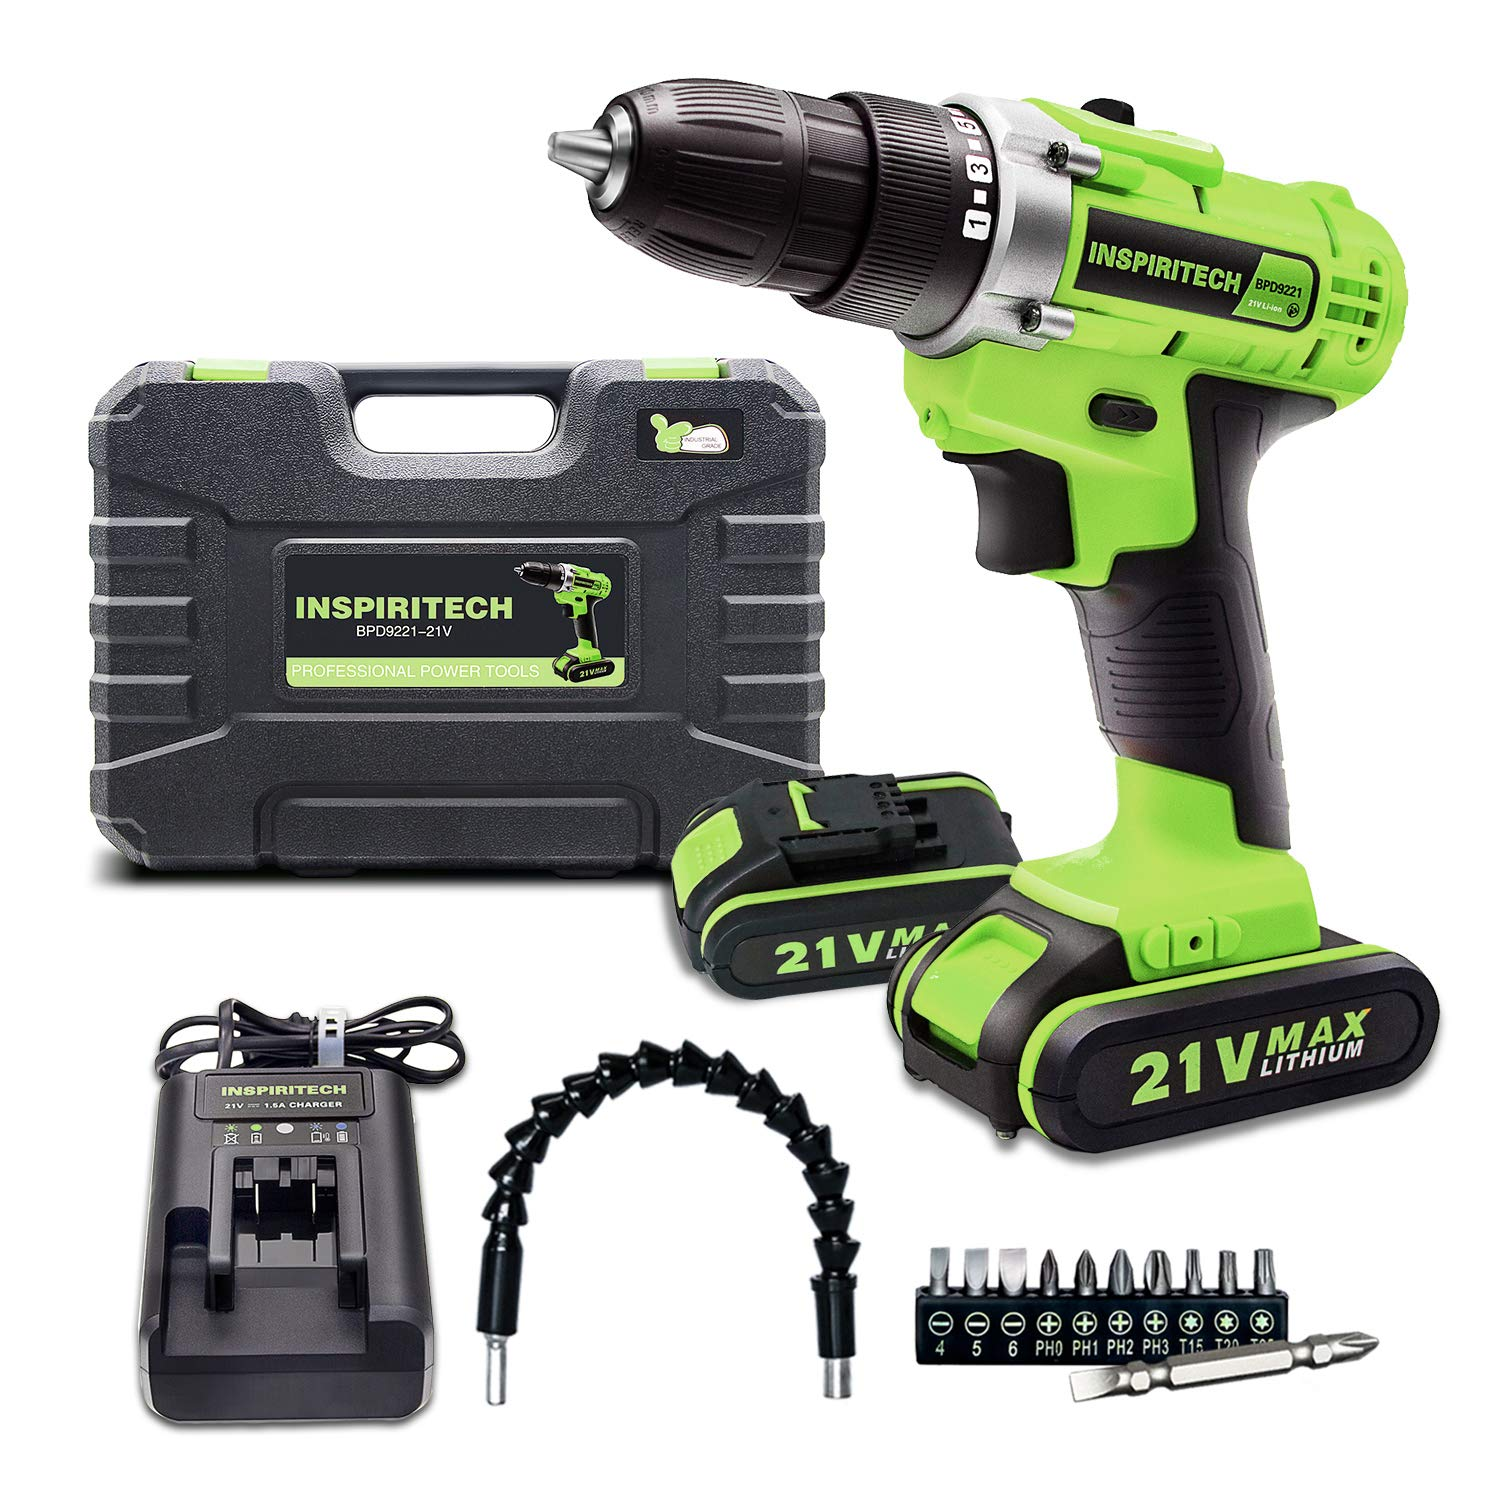 Inspiritech 21V Max Cordless Drill Driver with 2 Lithium Ion Batteries and Charger,Variable Speed 3 8Inch Keyless Chuck 16 Position Clutch, Front LED Light,12 Accessories